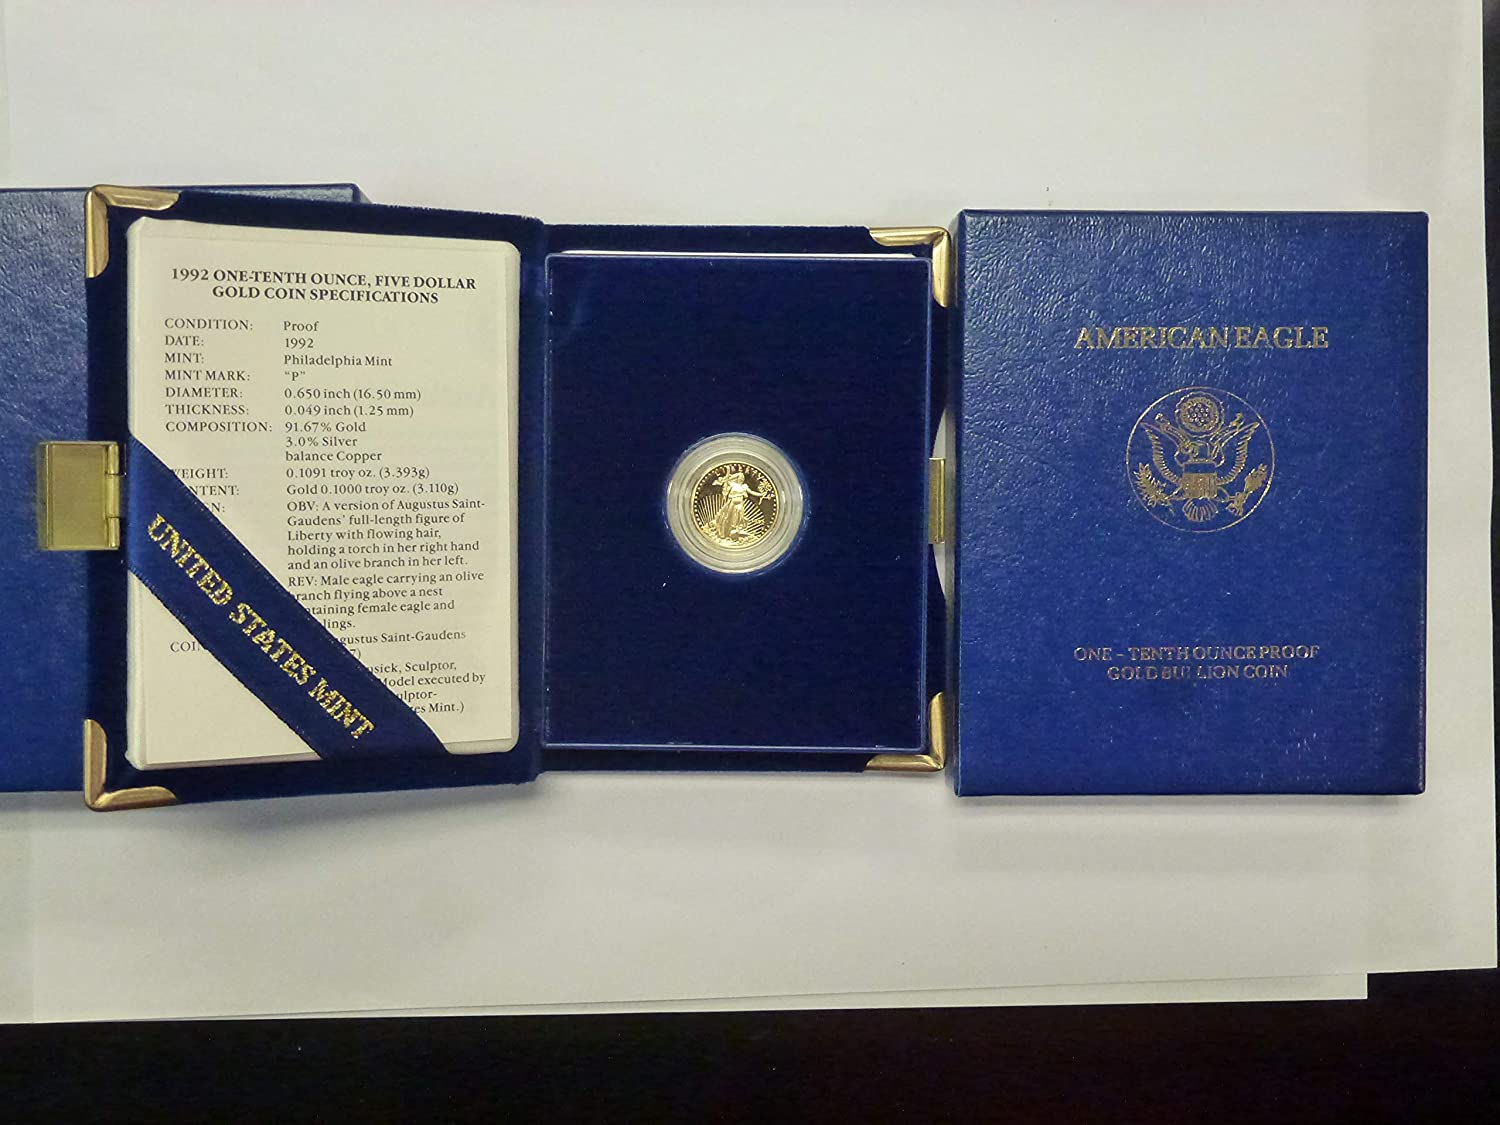 1992 P American Seattle Mall Eagle One-Tenth Ounce Classic $5 Gold Mint Proof US